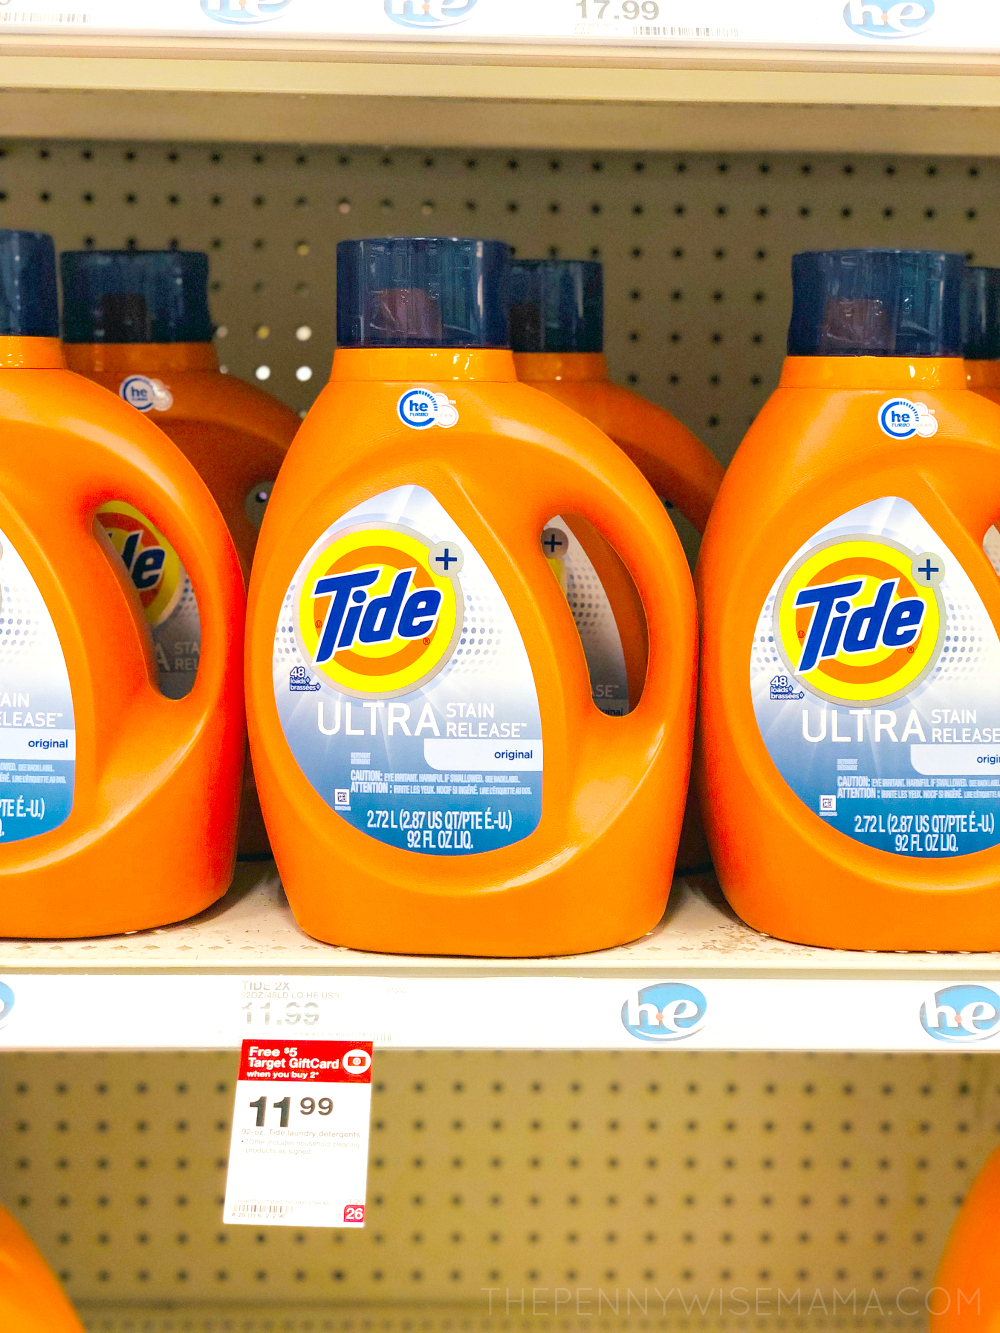 Hot 3 Off Tide Pods Or Tide Liquid Detergent Coupon The Pennywisemama